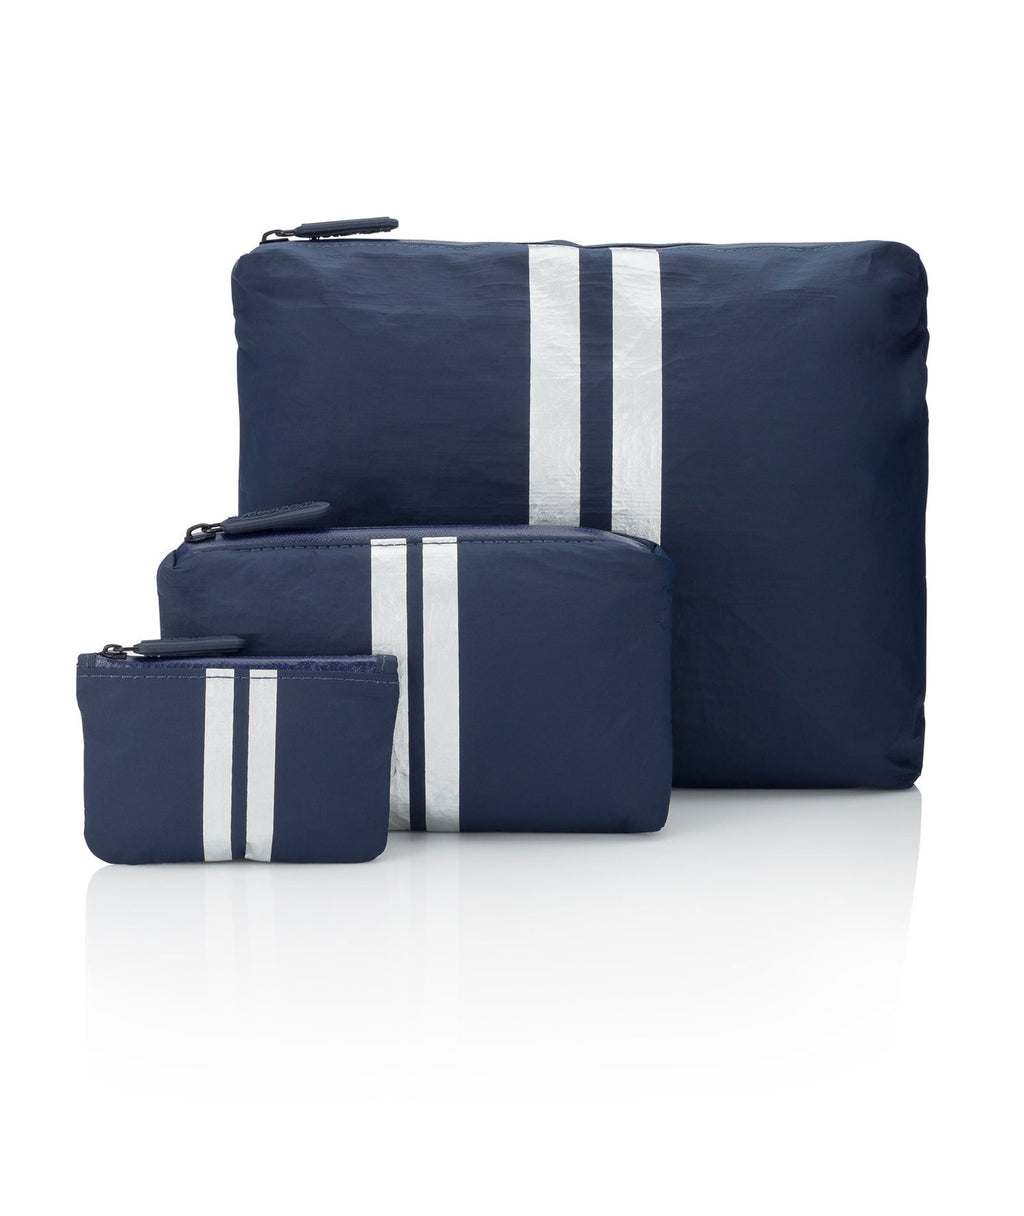 HI Love Travel Navy White Stripe 3 Pack